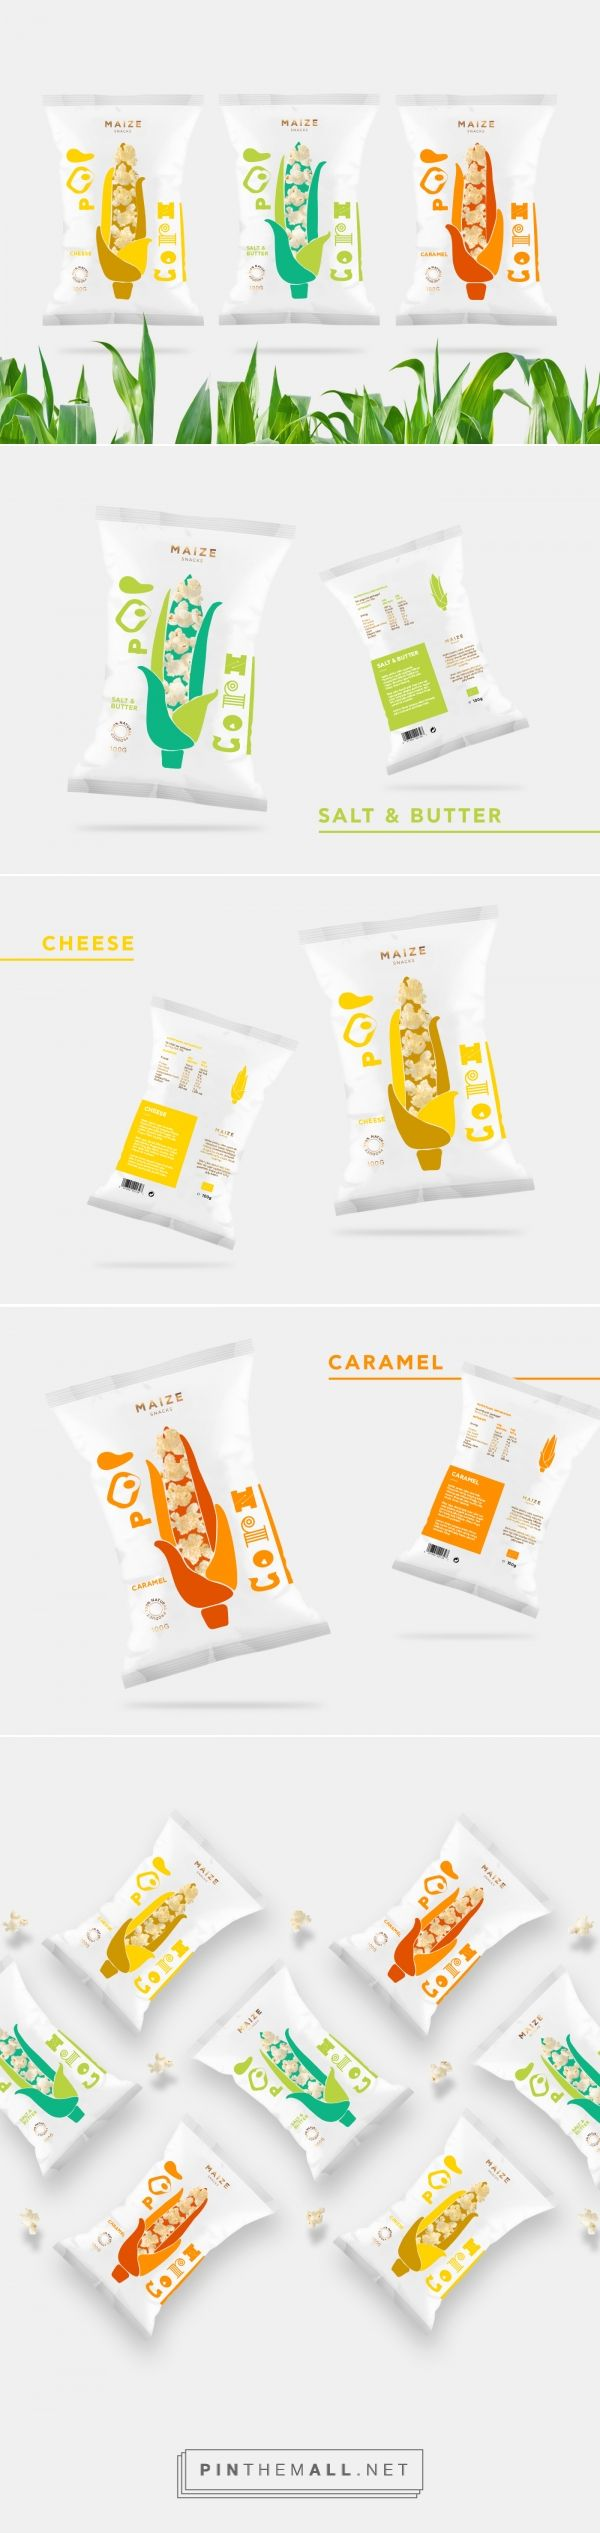 Maize popcorn snacks packaging design concept by Gabriela Dule - http://www.packagingoftheworld.com/2017/03/maize-snacks-concept.html